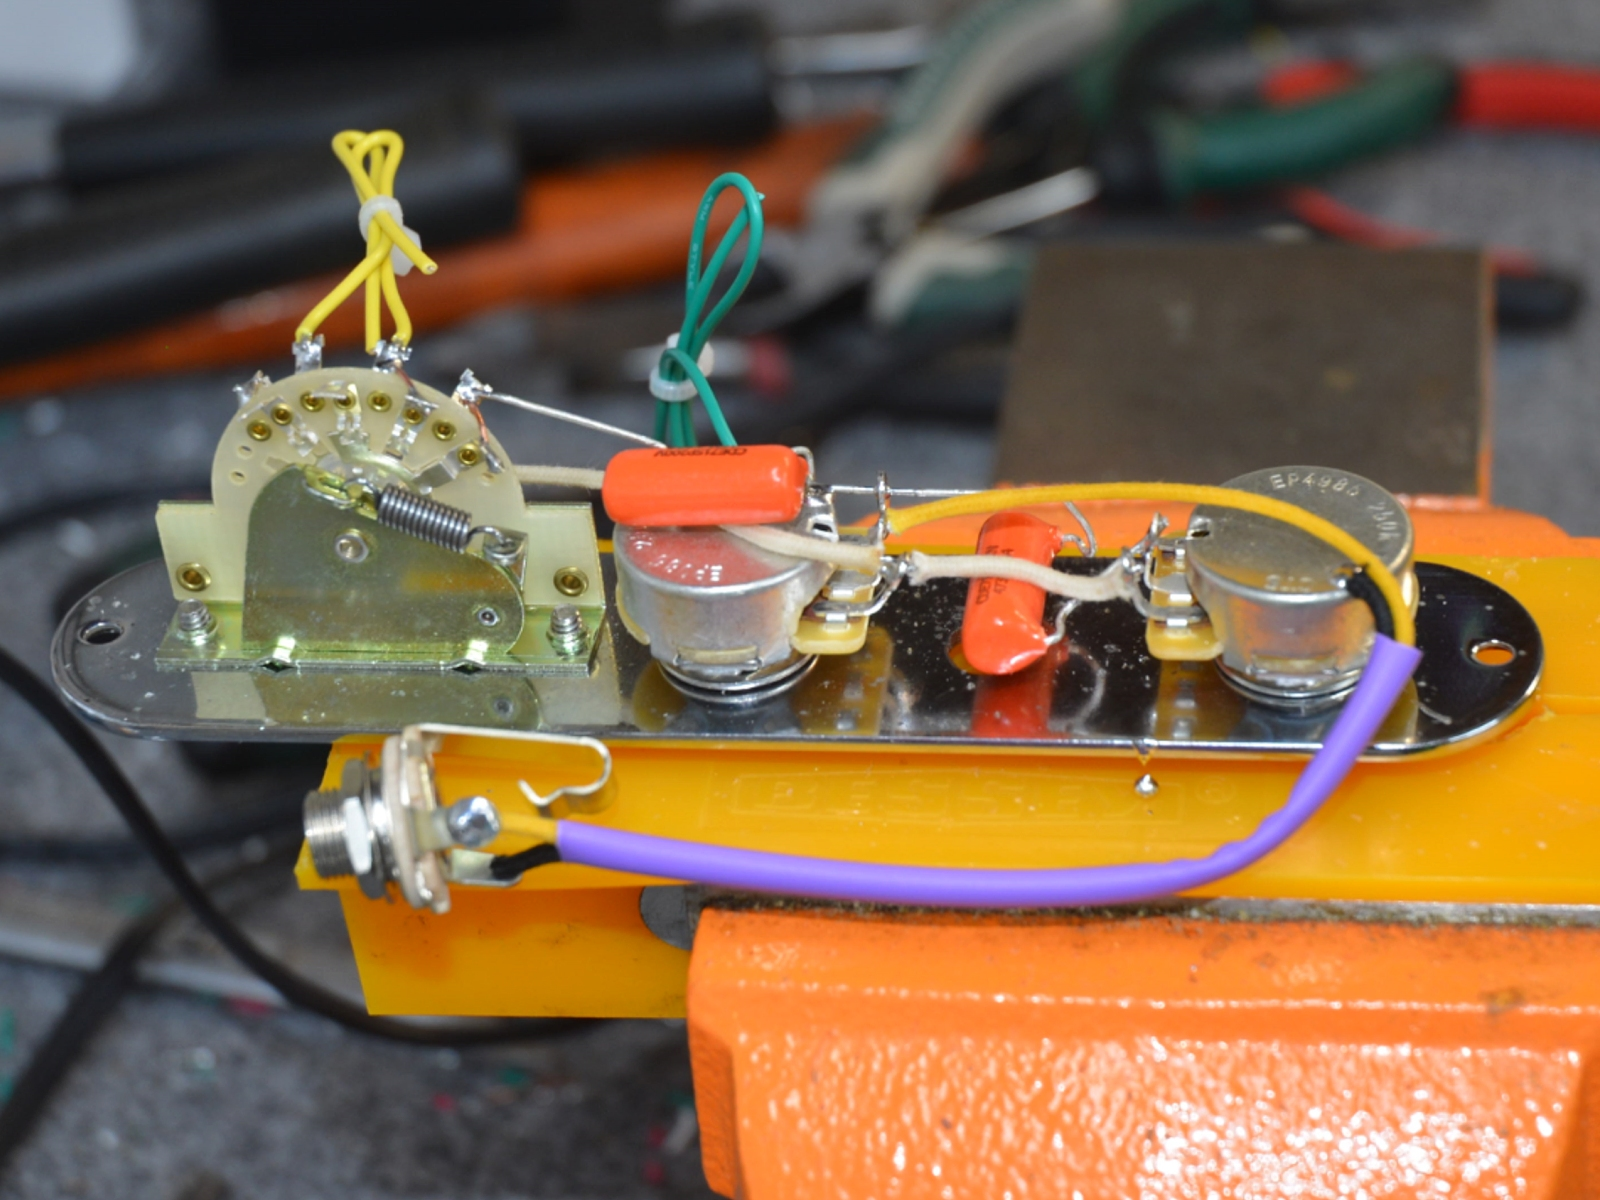 hight resolution of 1953 telecaster blackguard wiring harness handcrafted by hoagland custom